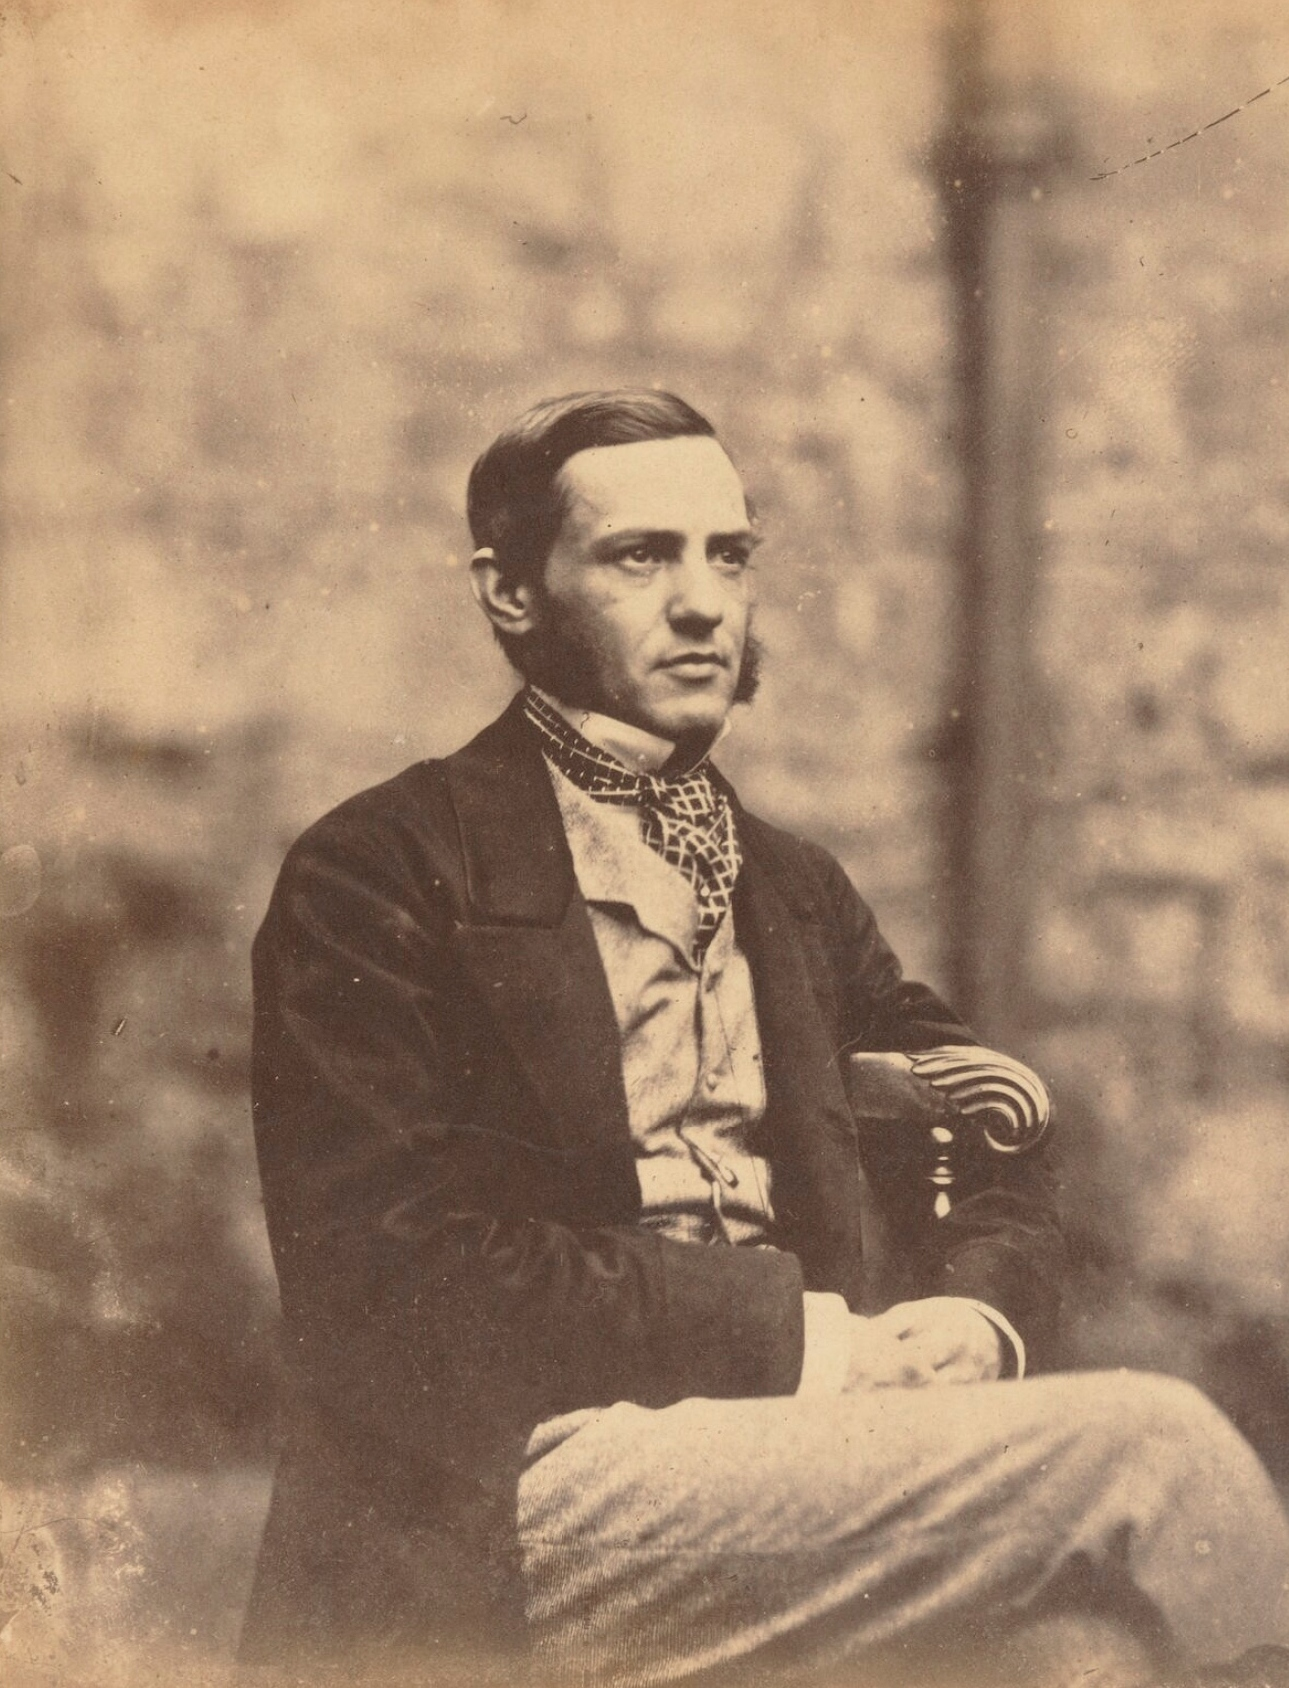 File:Max Muller taken by Lewis Carroll.jpg